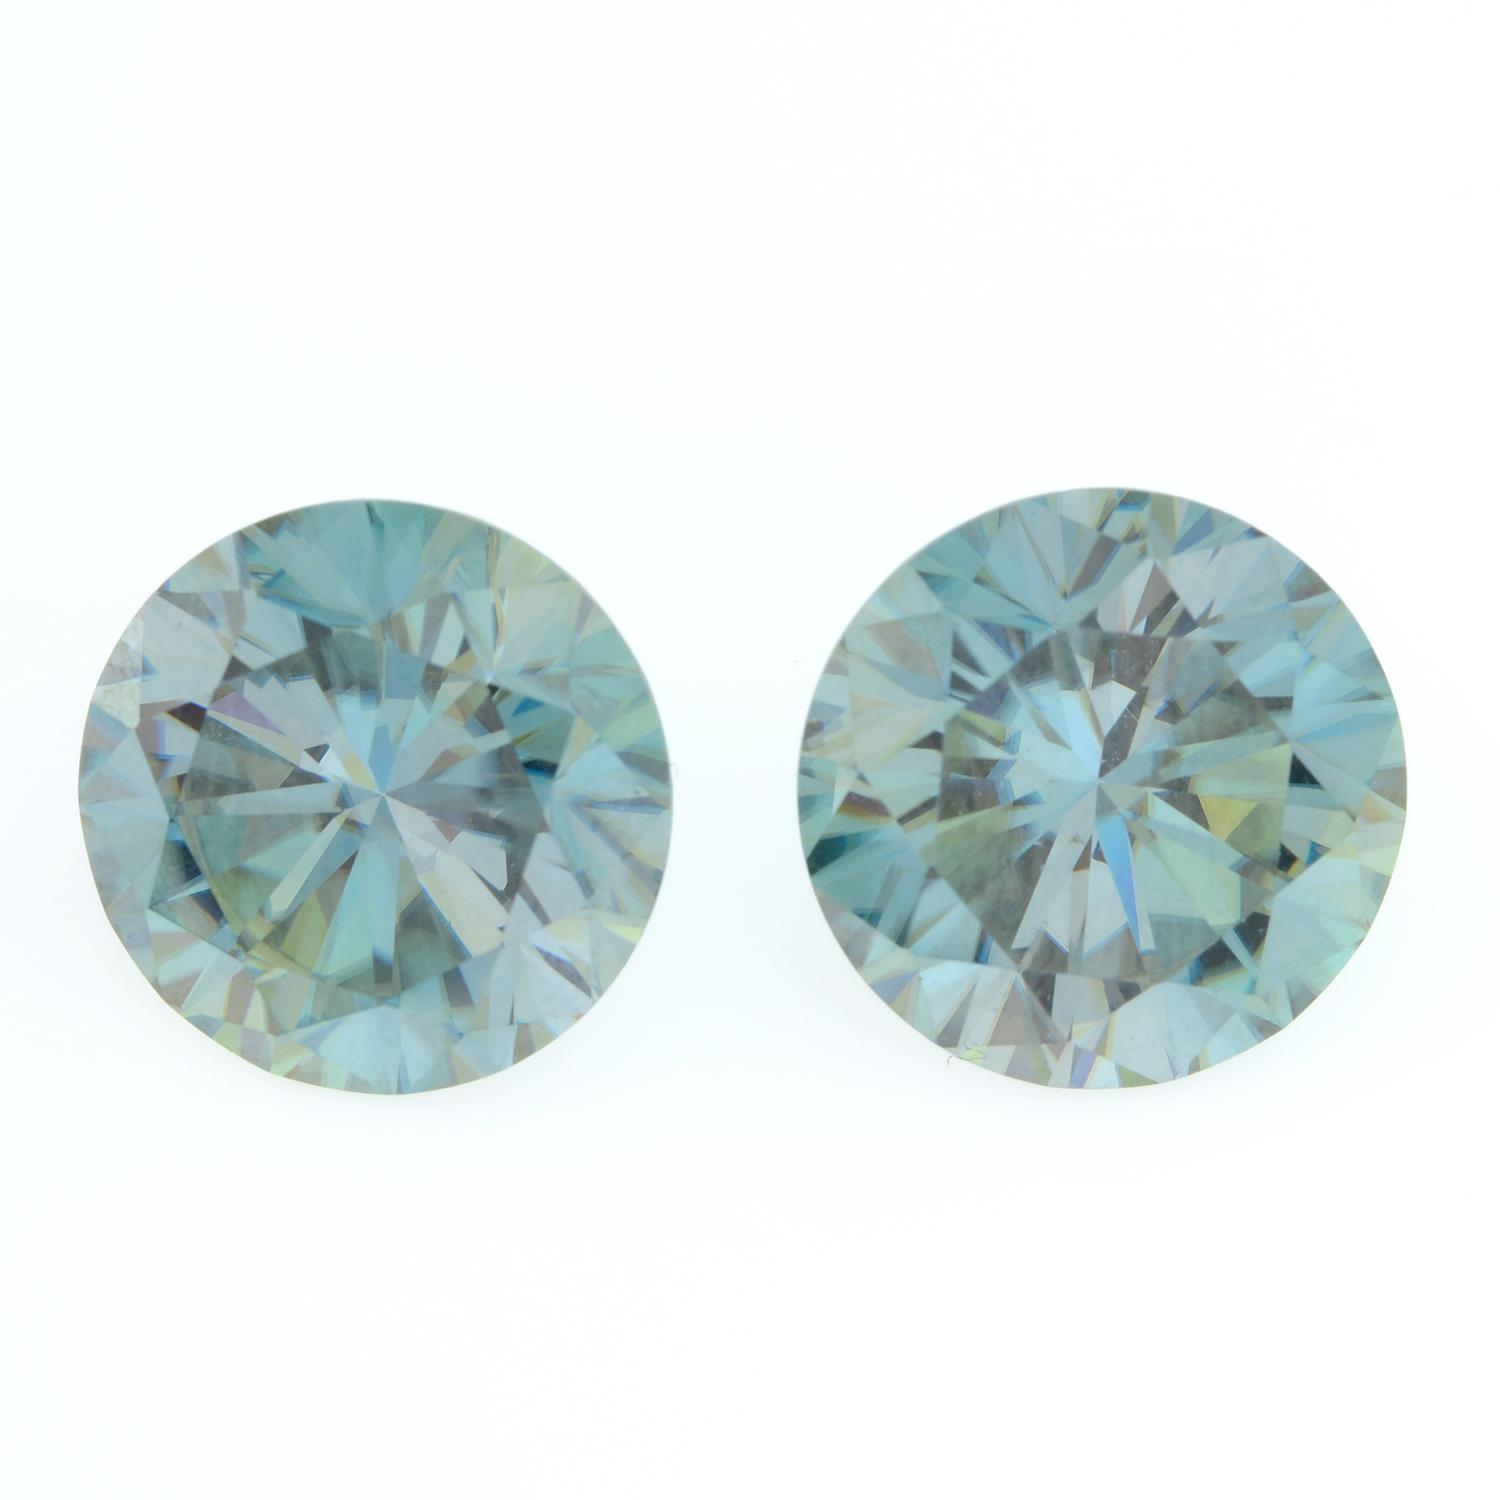 A pair of circular-shape green synthetic moissanite, weighing 13.72cts total.